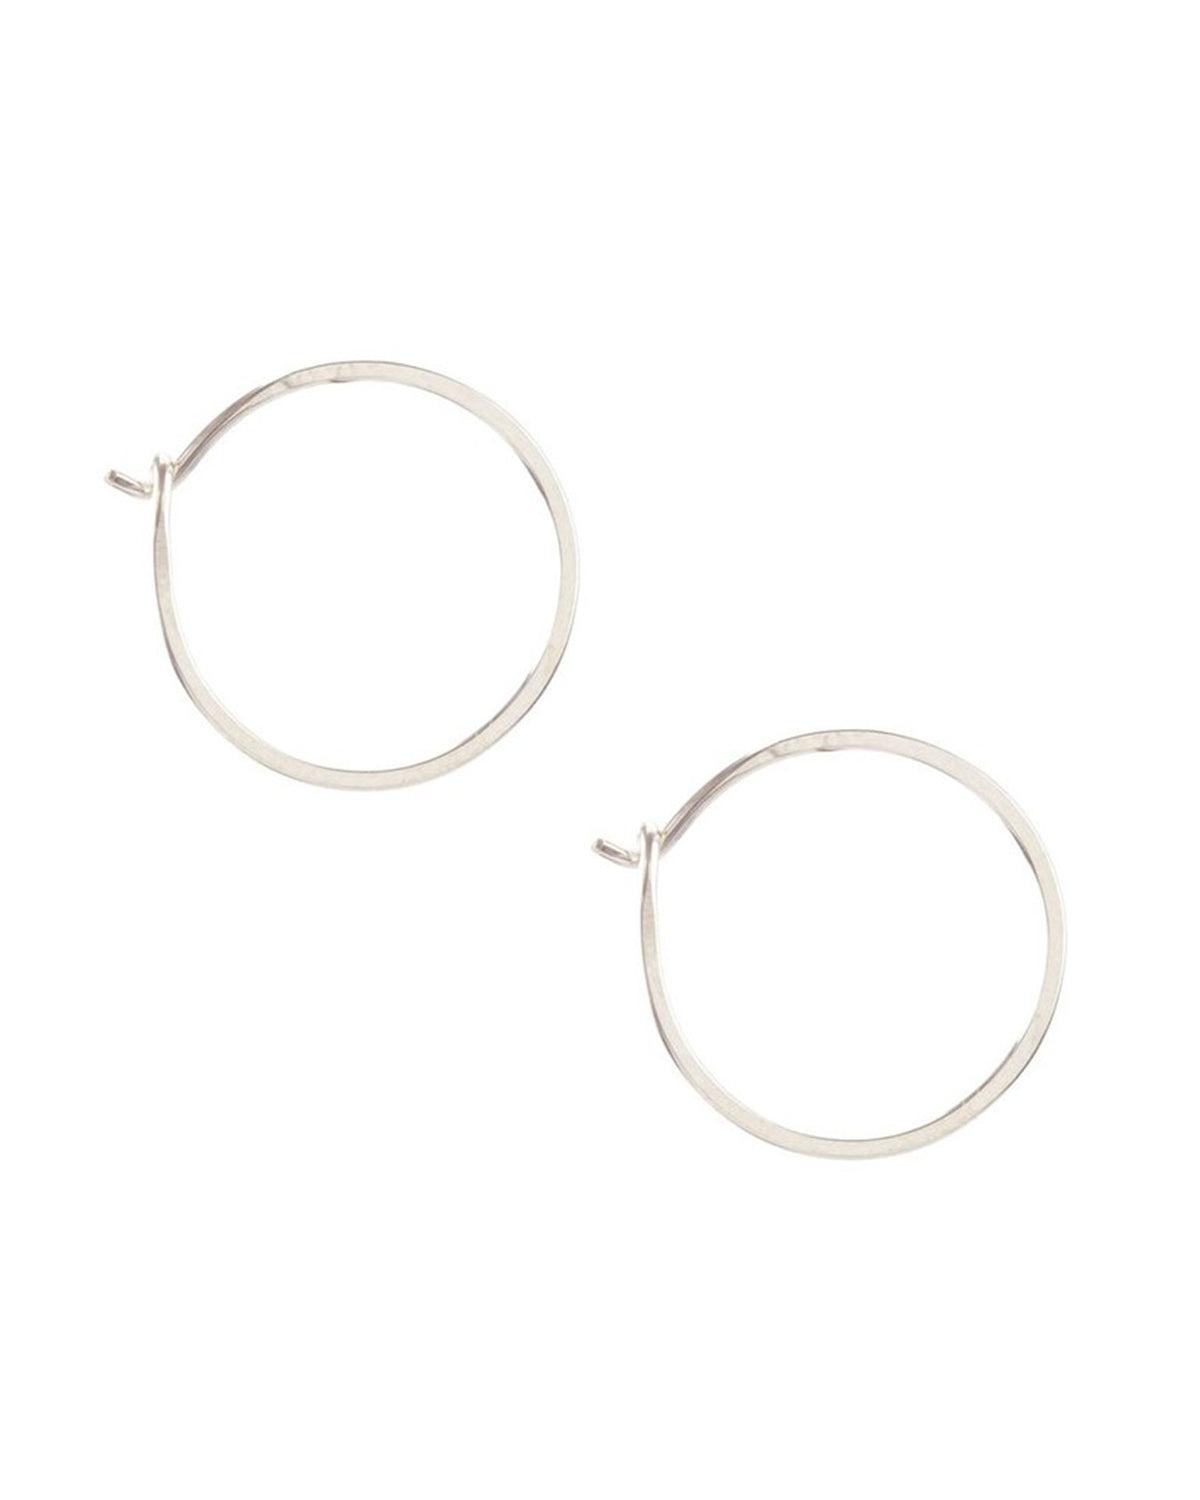 Kris Nations Jewelry Sterling Silver / O/S Small Simple Hoops